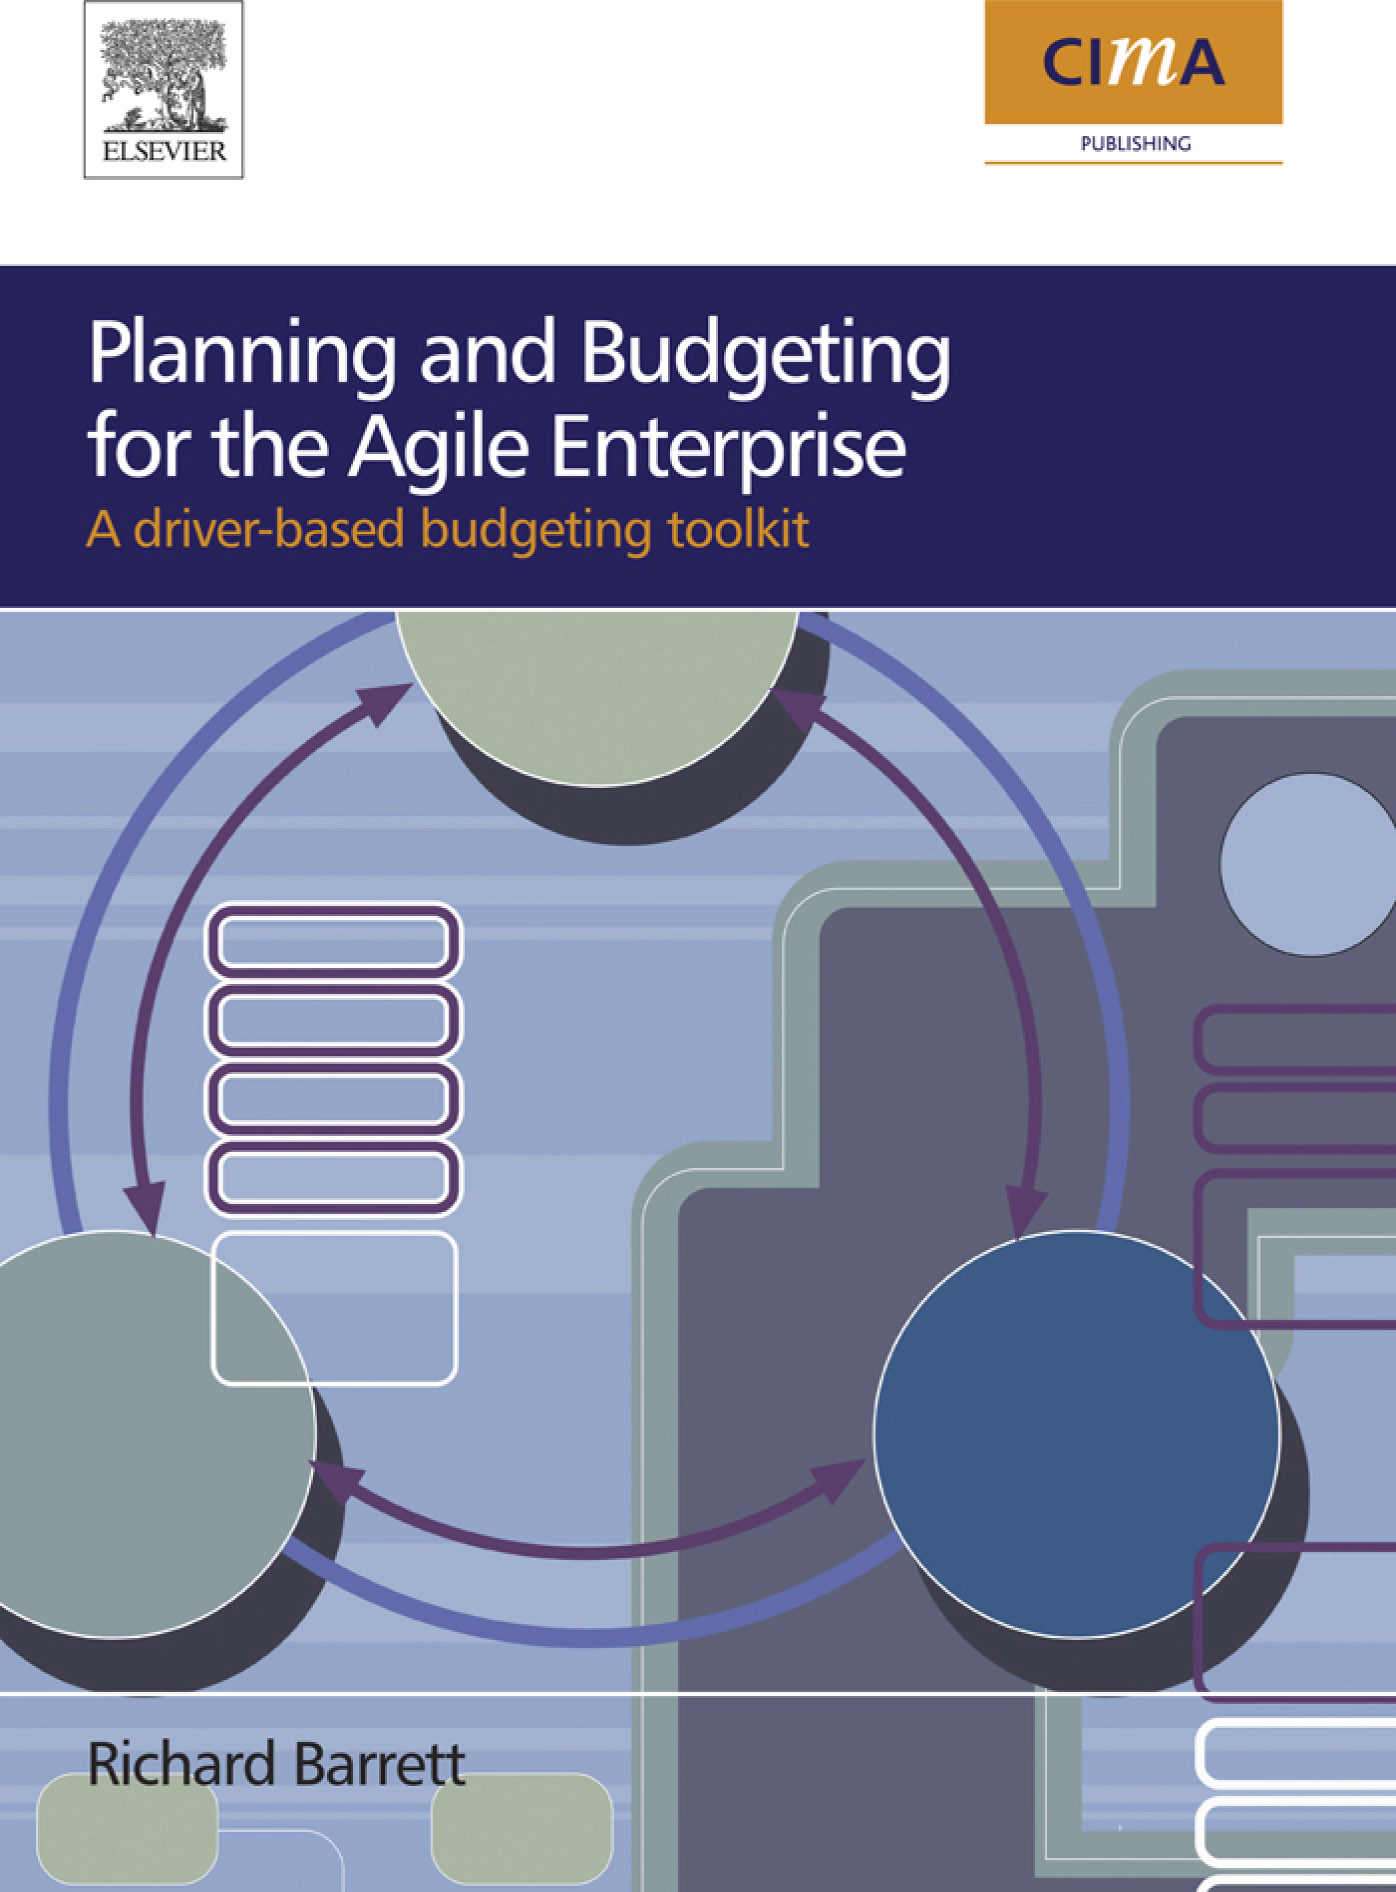 Download Ebook Planning and Budgeting for the Agile Enterprise by Richard Barrett Pdf